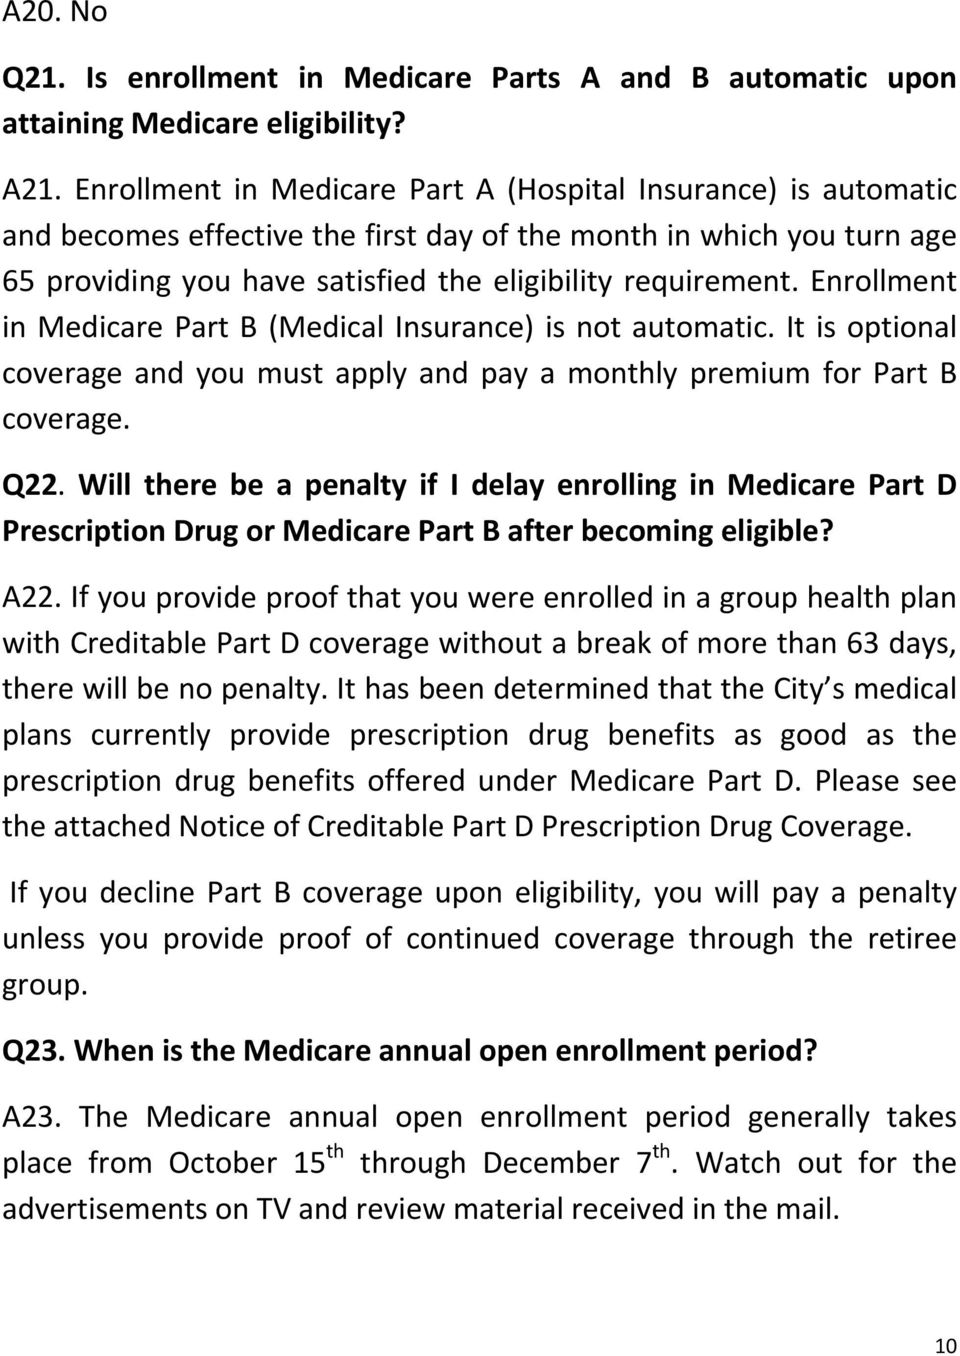 Enrollment in Medicare Part B (Medical Insurance) is not automatic. It is optional coverage and you must apply and pay a monthly premium for Part B coverage. Q22.